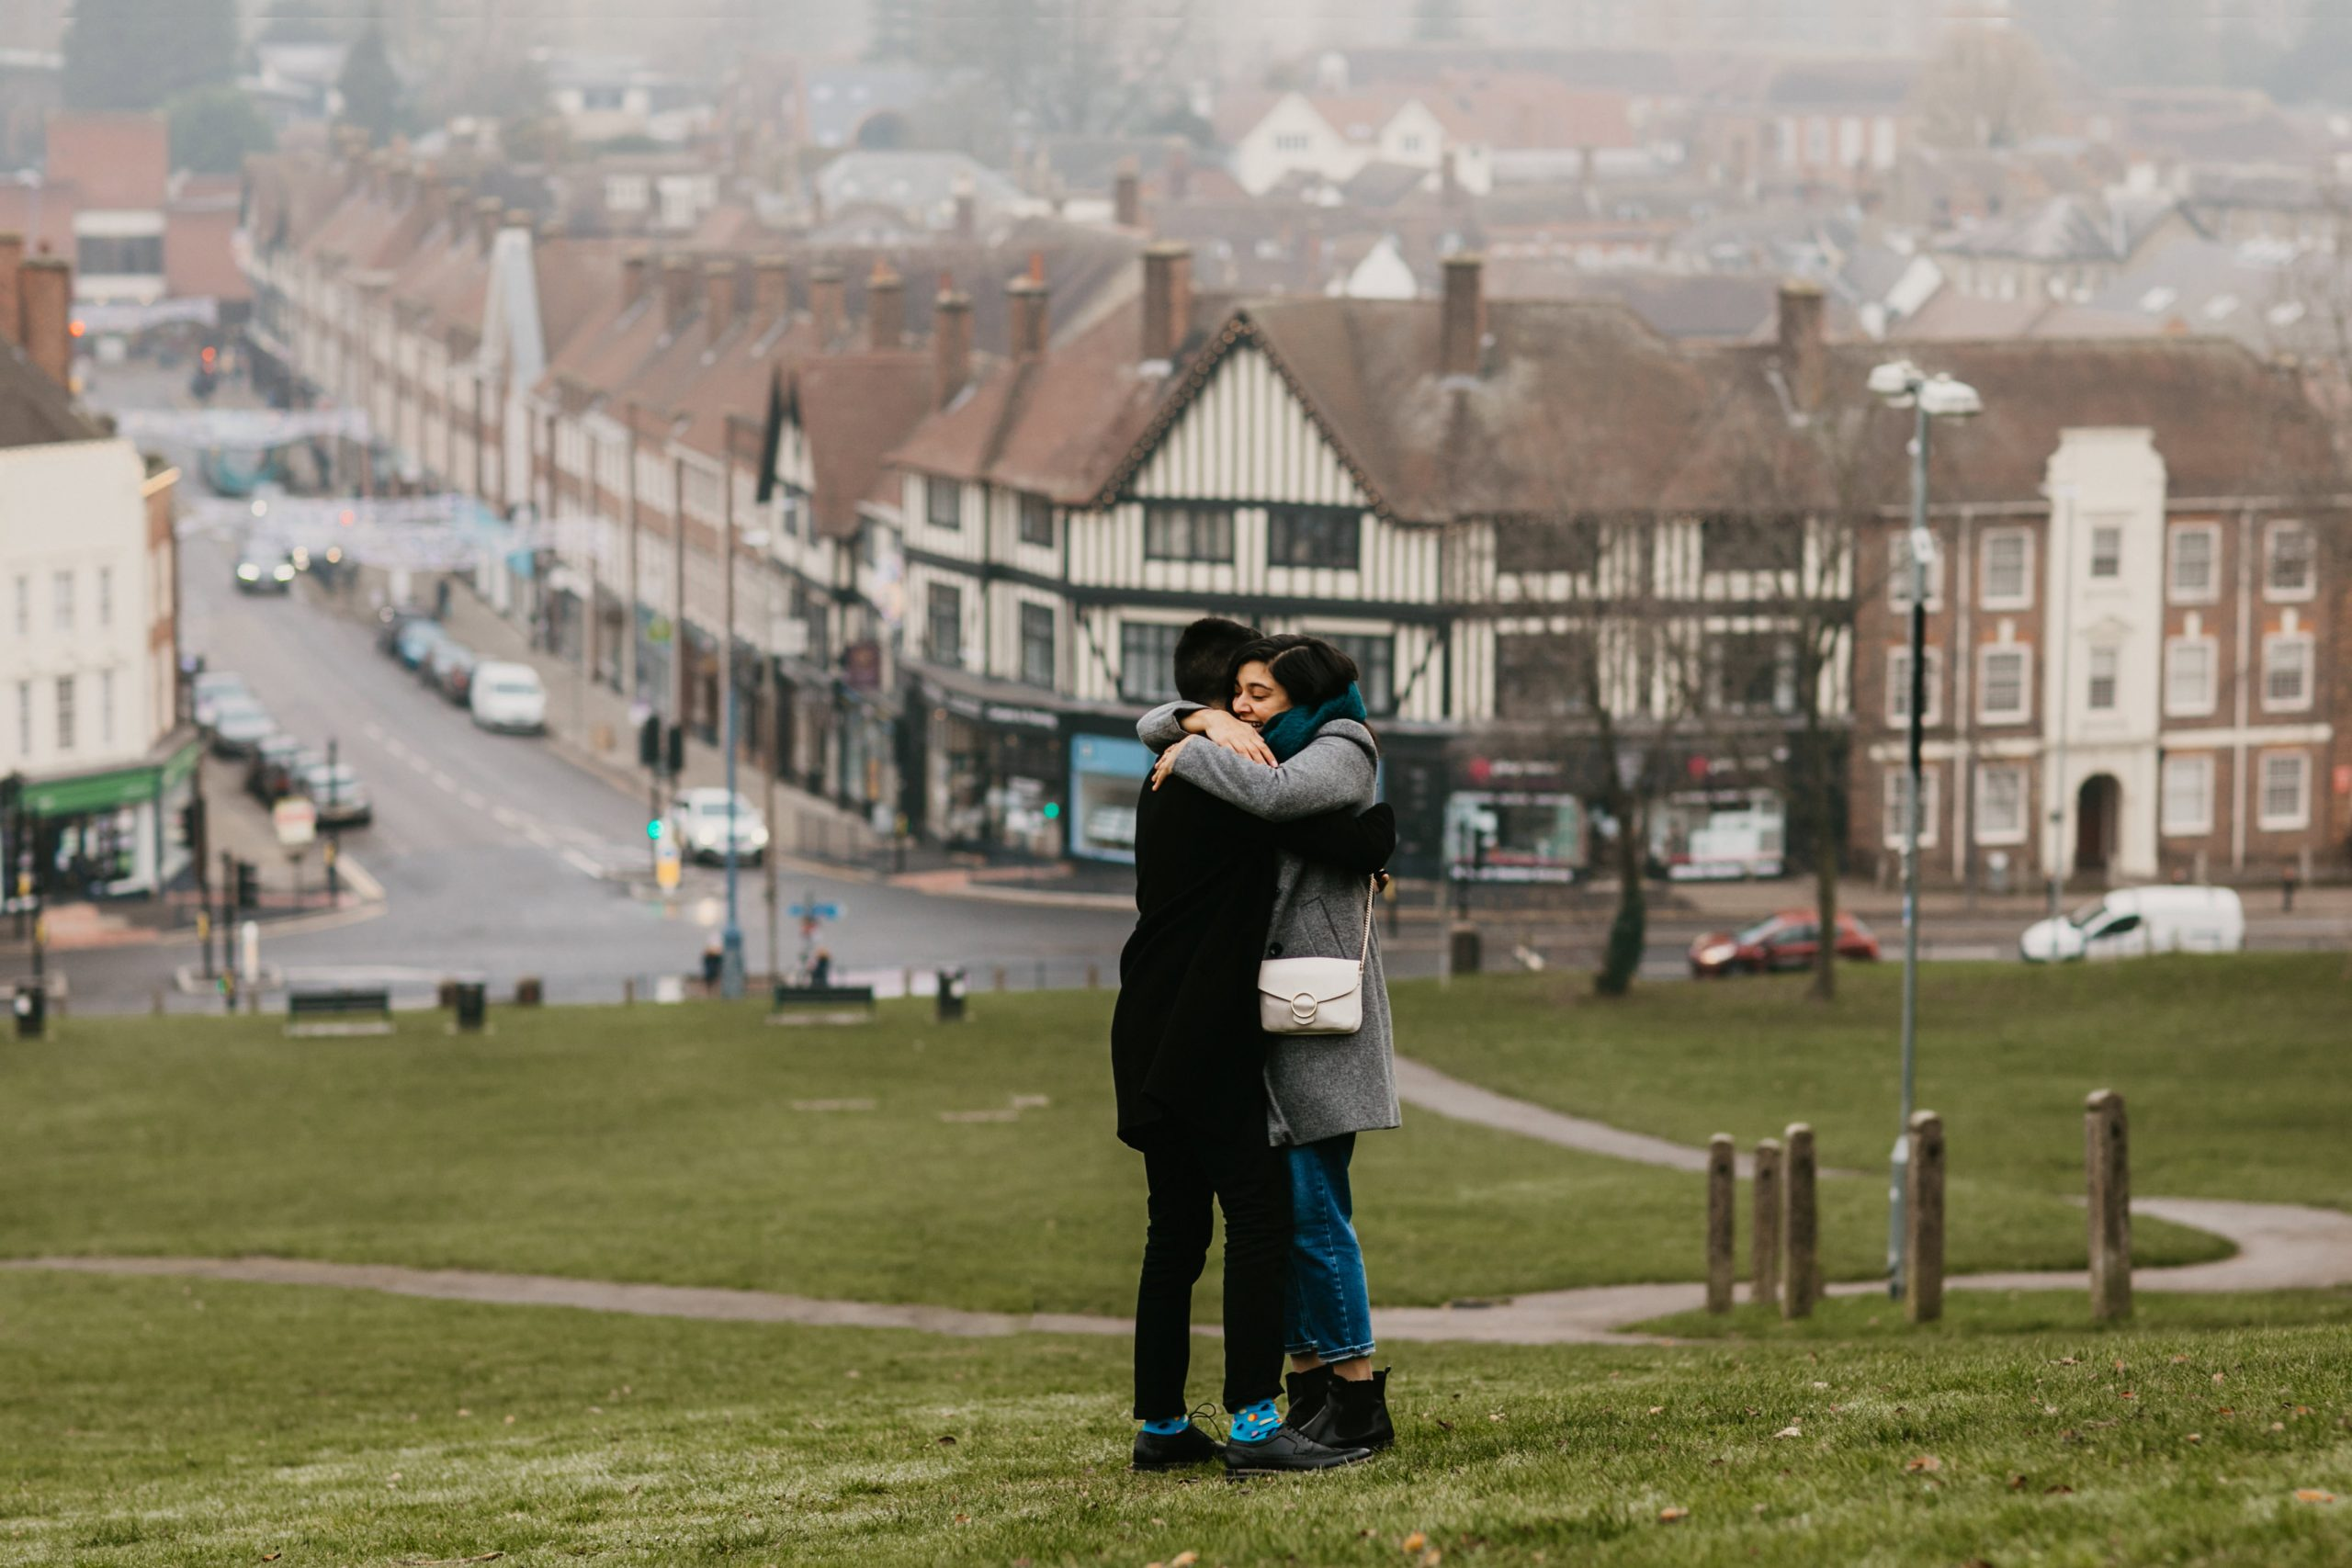 couple hugging after she said yes during the proposal shoot